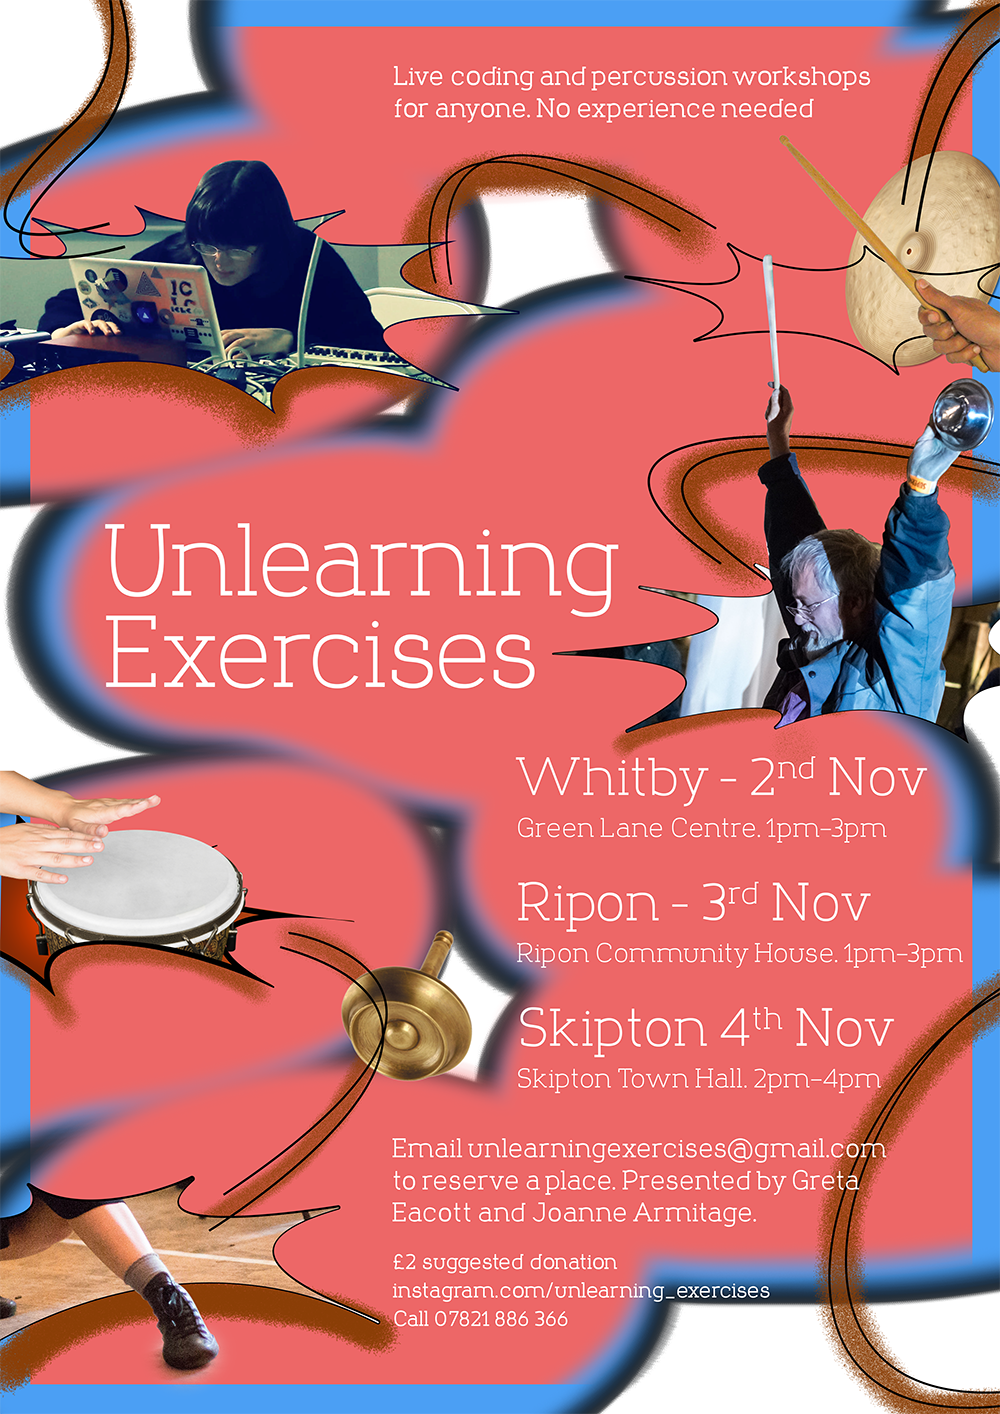 Unlearning Exercises - Percussion and Live Coding workshop